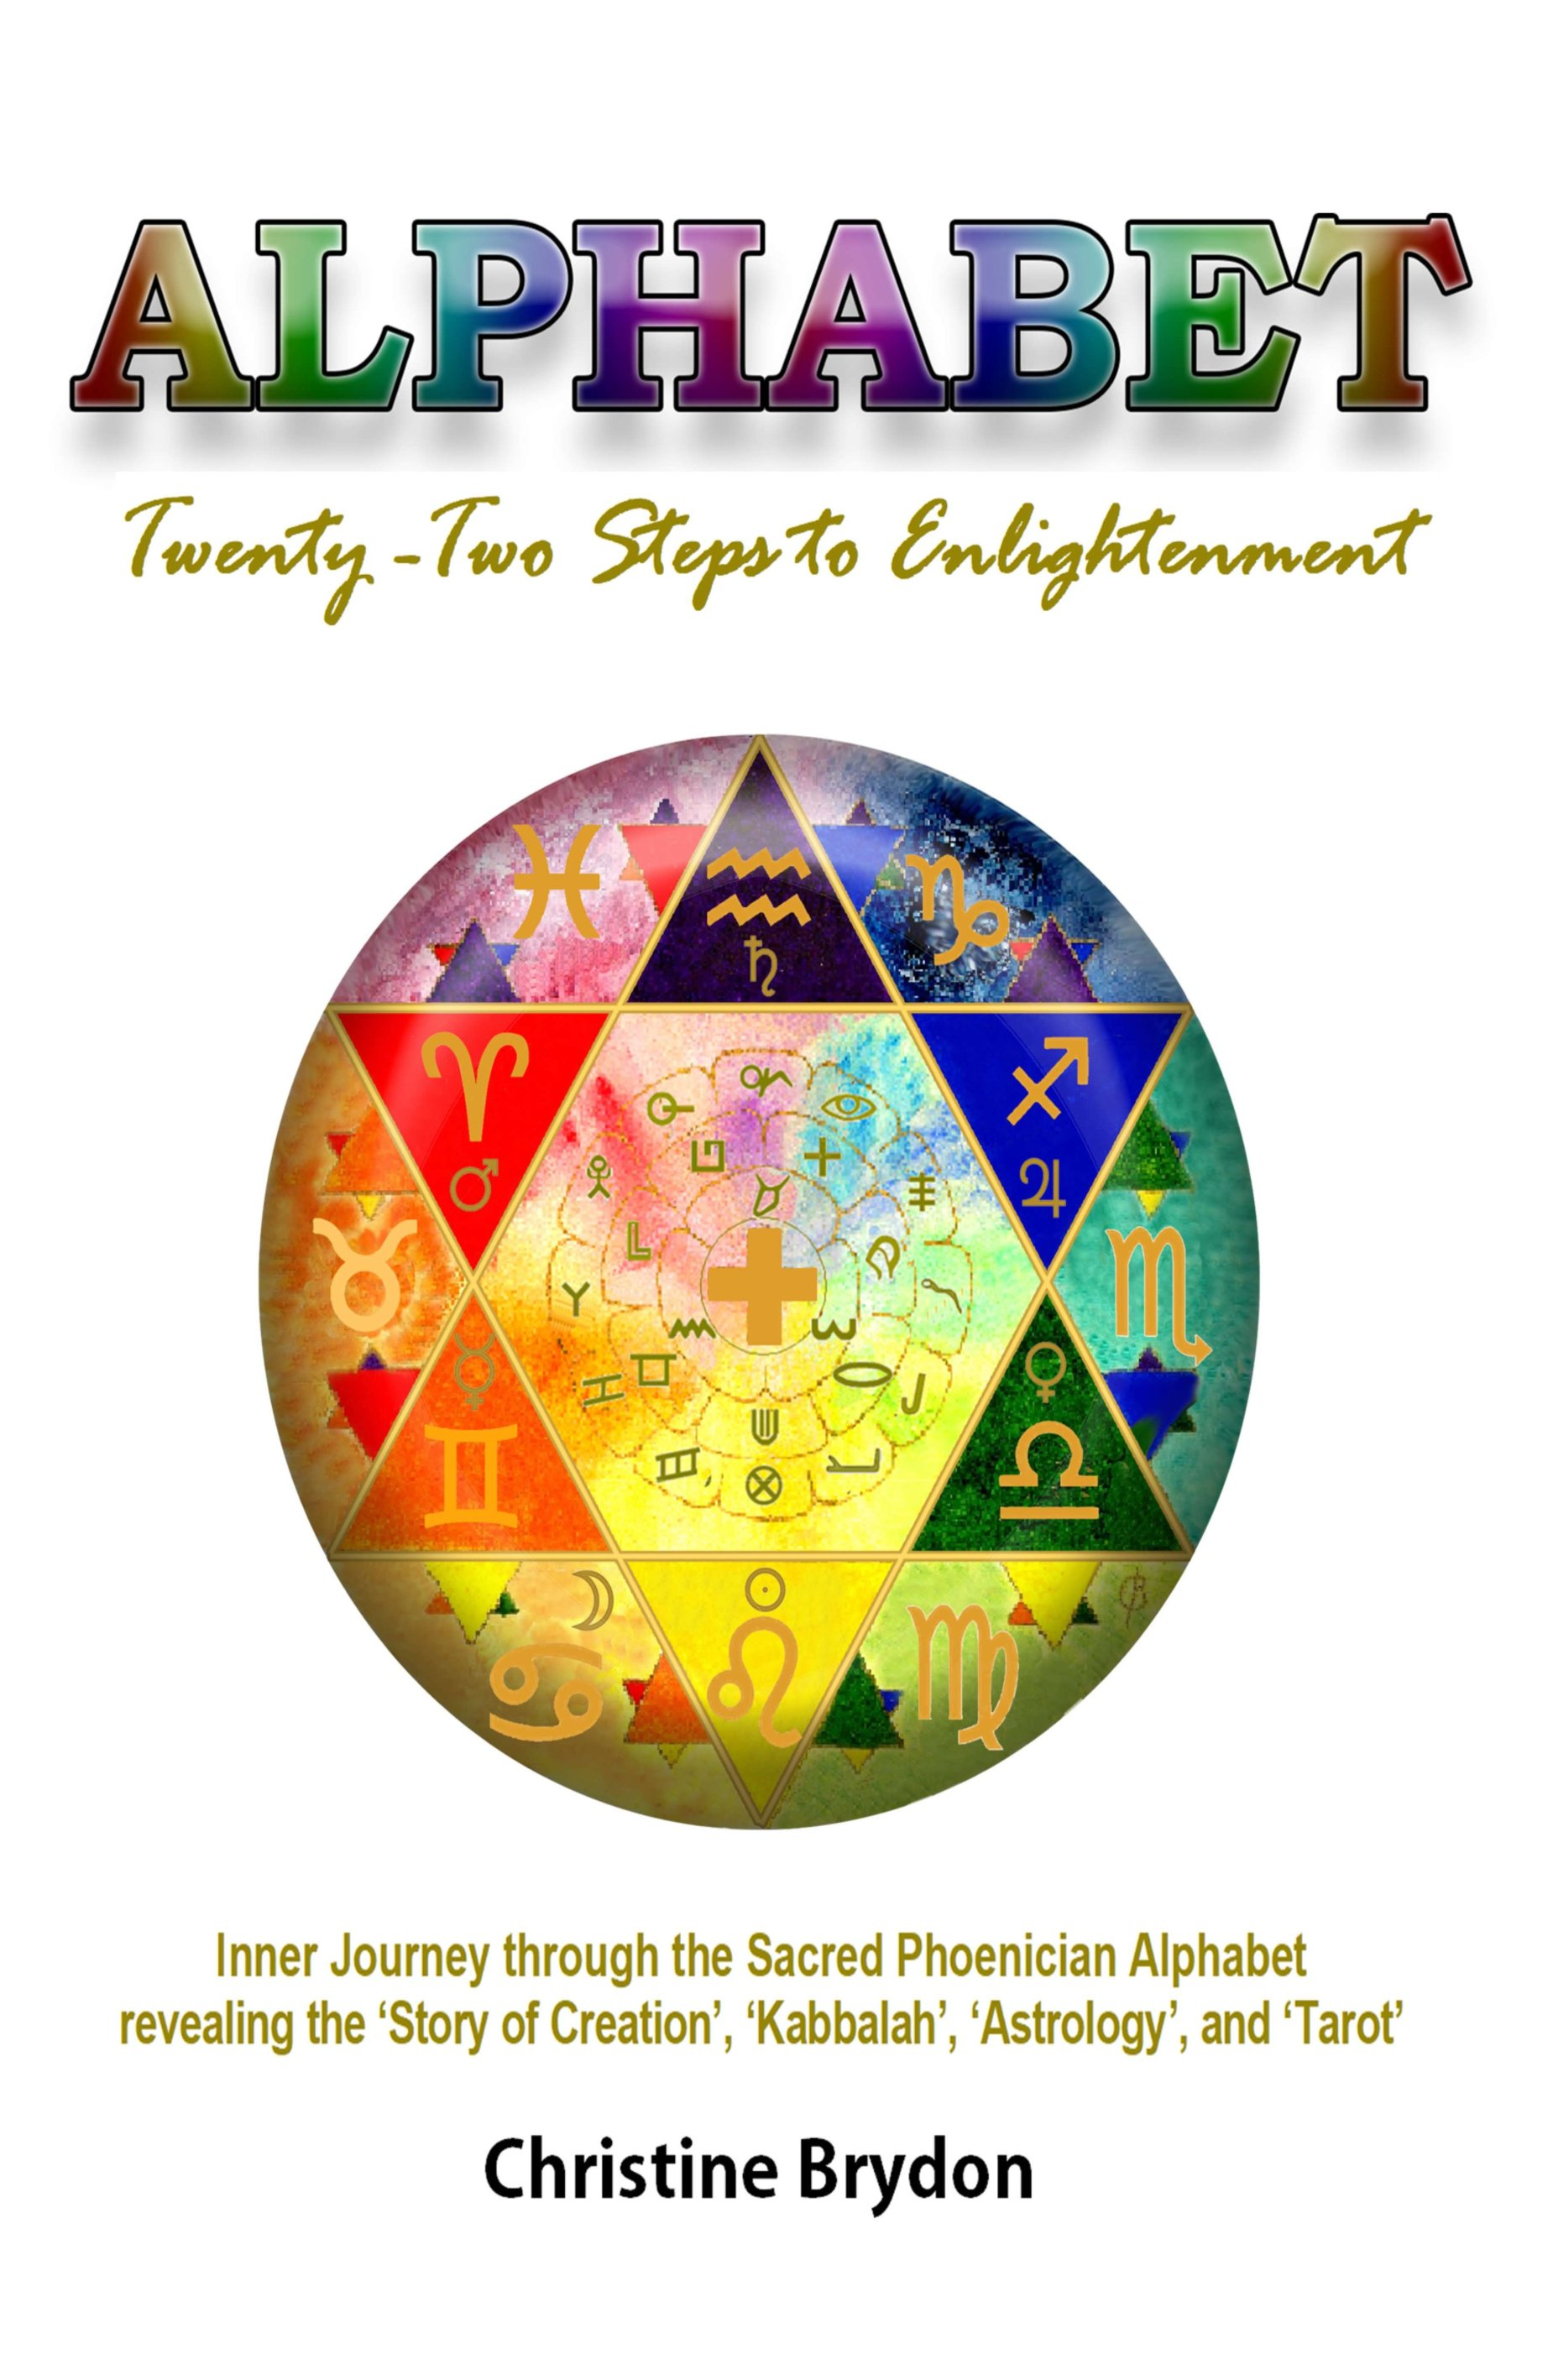 \'Alphabet\' Twenty-Two Steps to Enlightenment - Inner Journey through the Sacred Phoenician Alphabet